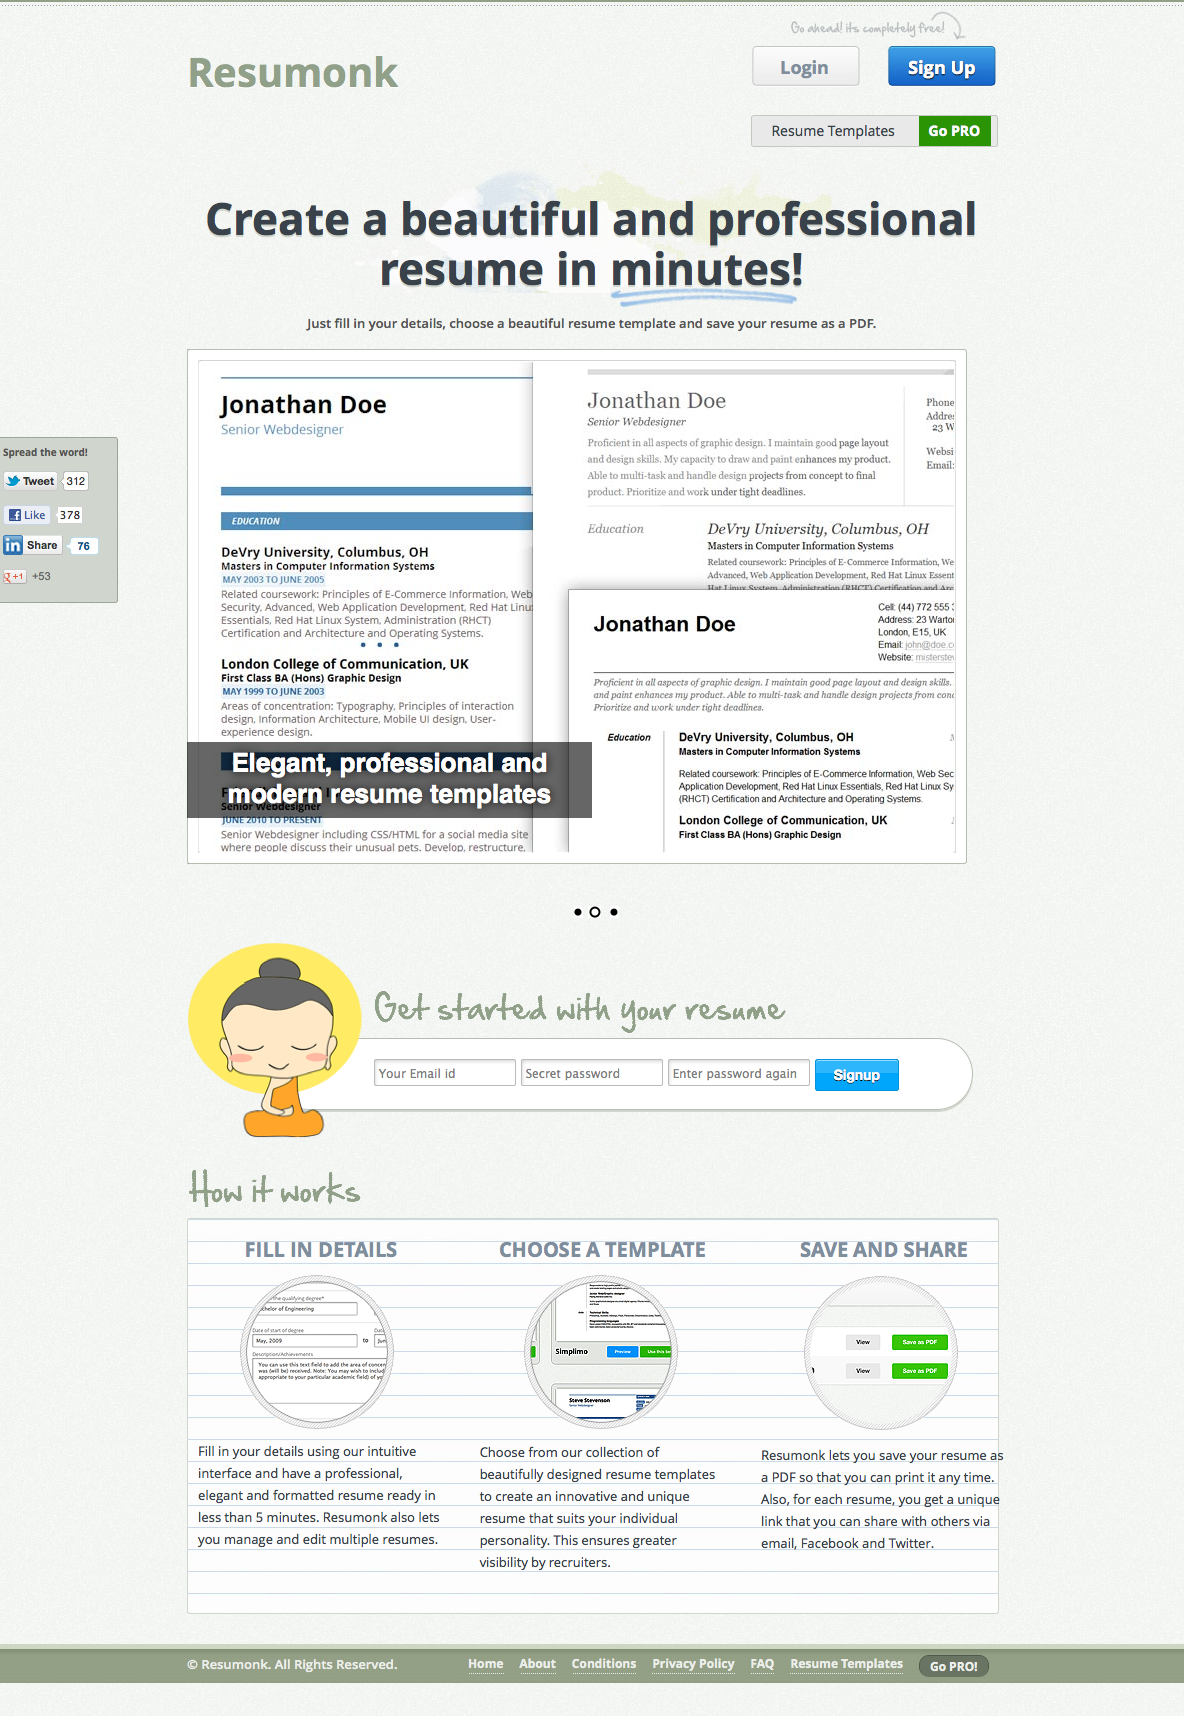 Resumonk - Create a beautiful and professional resume in minutes ...